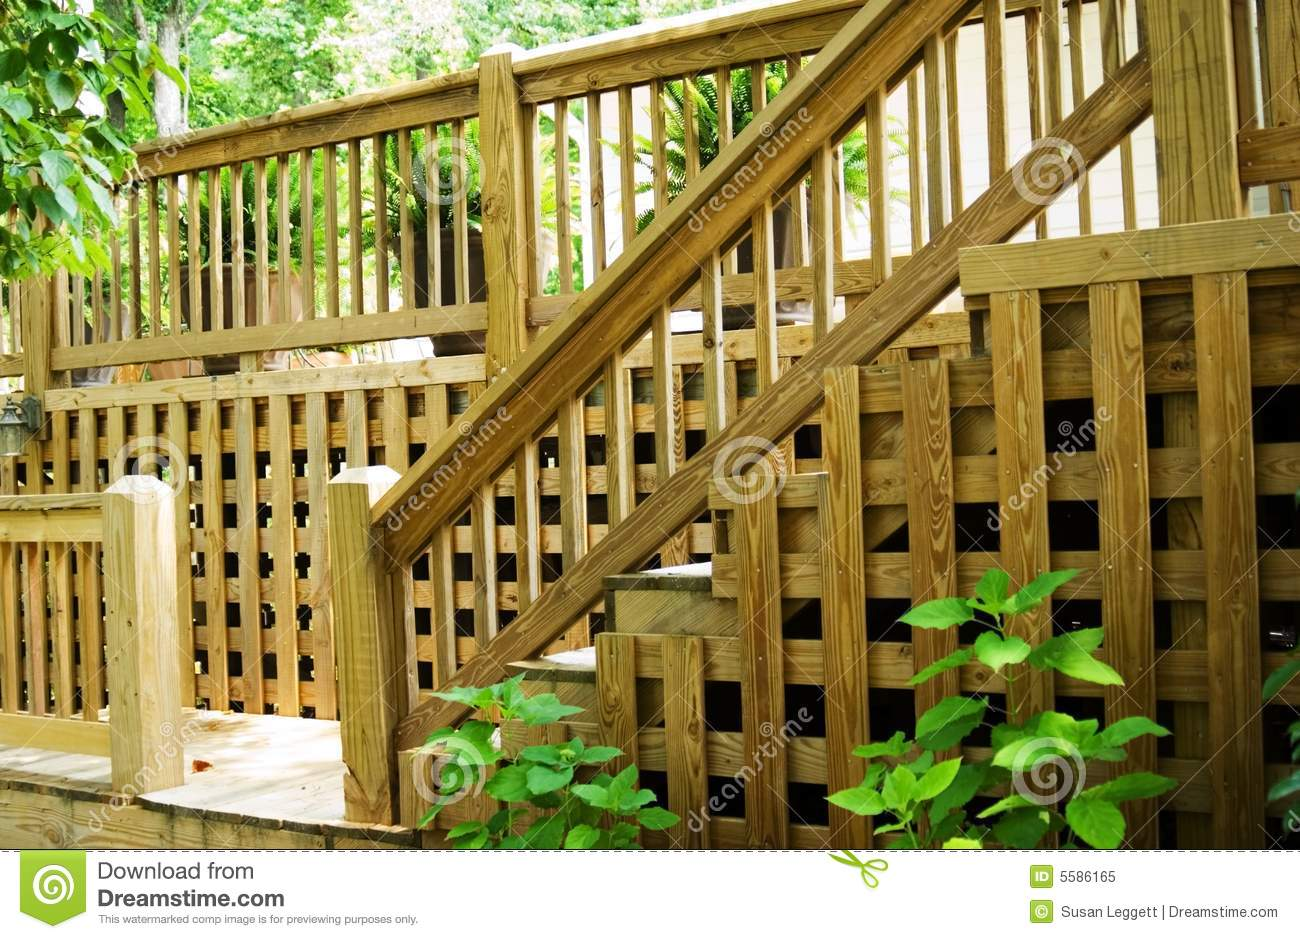 how to cut wooden lattice for decks